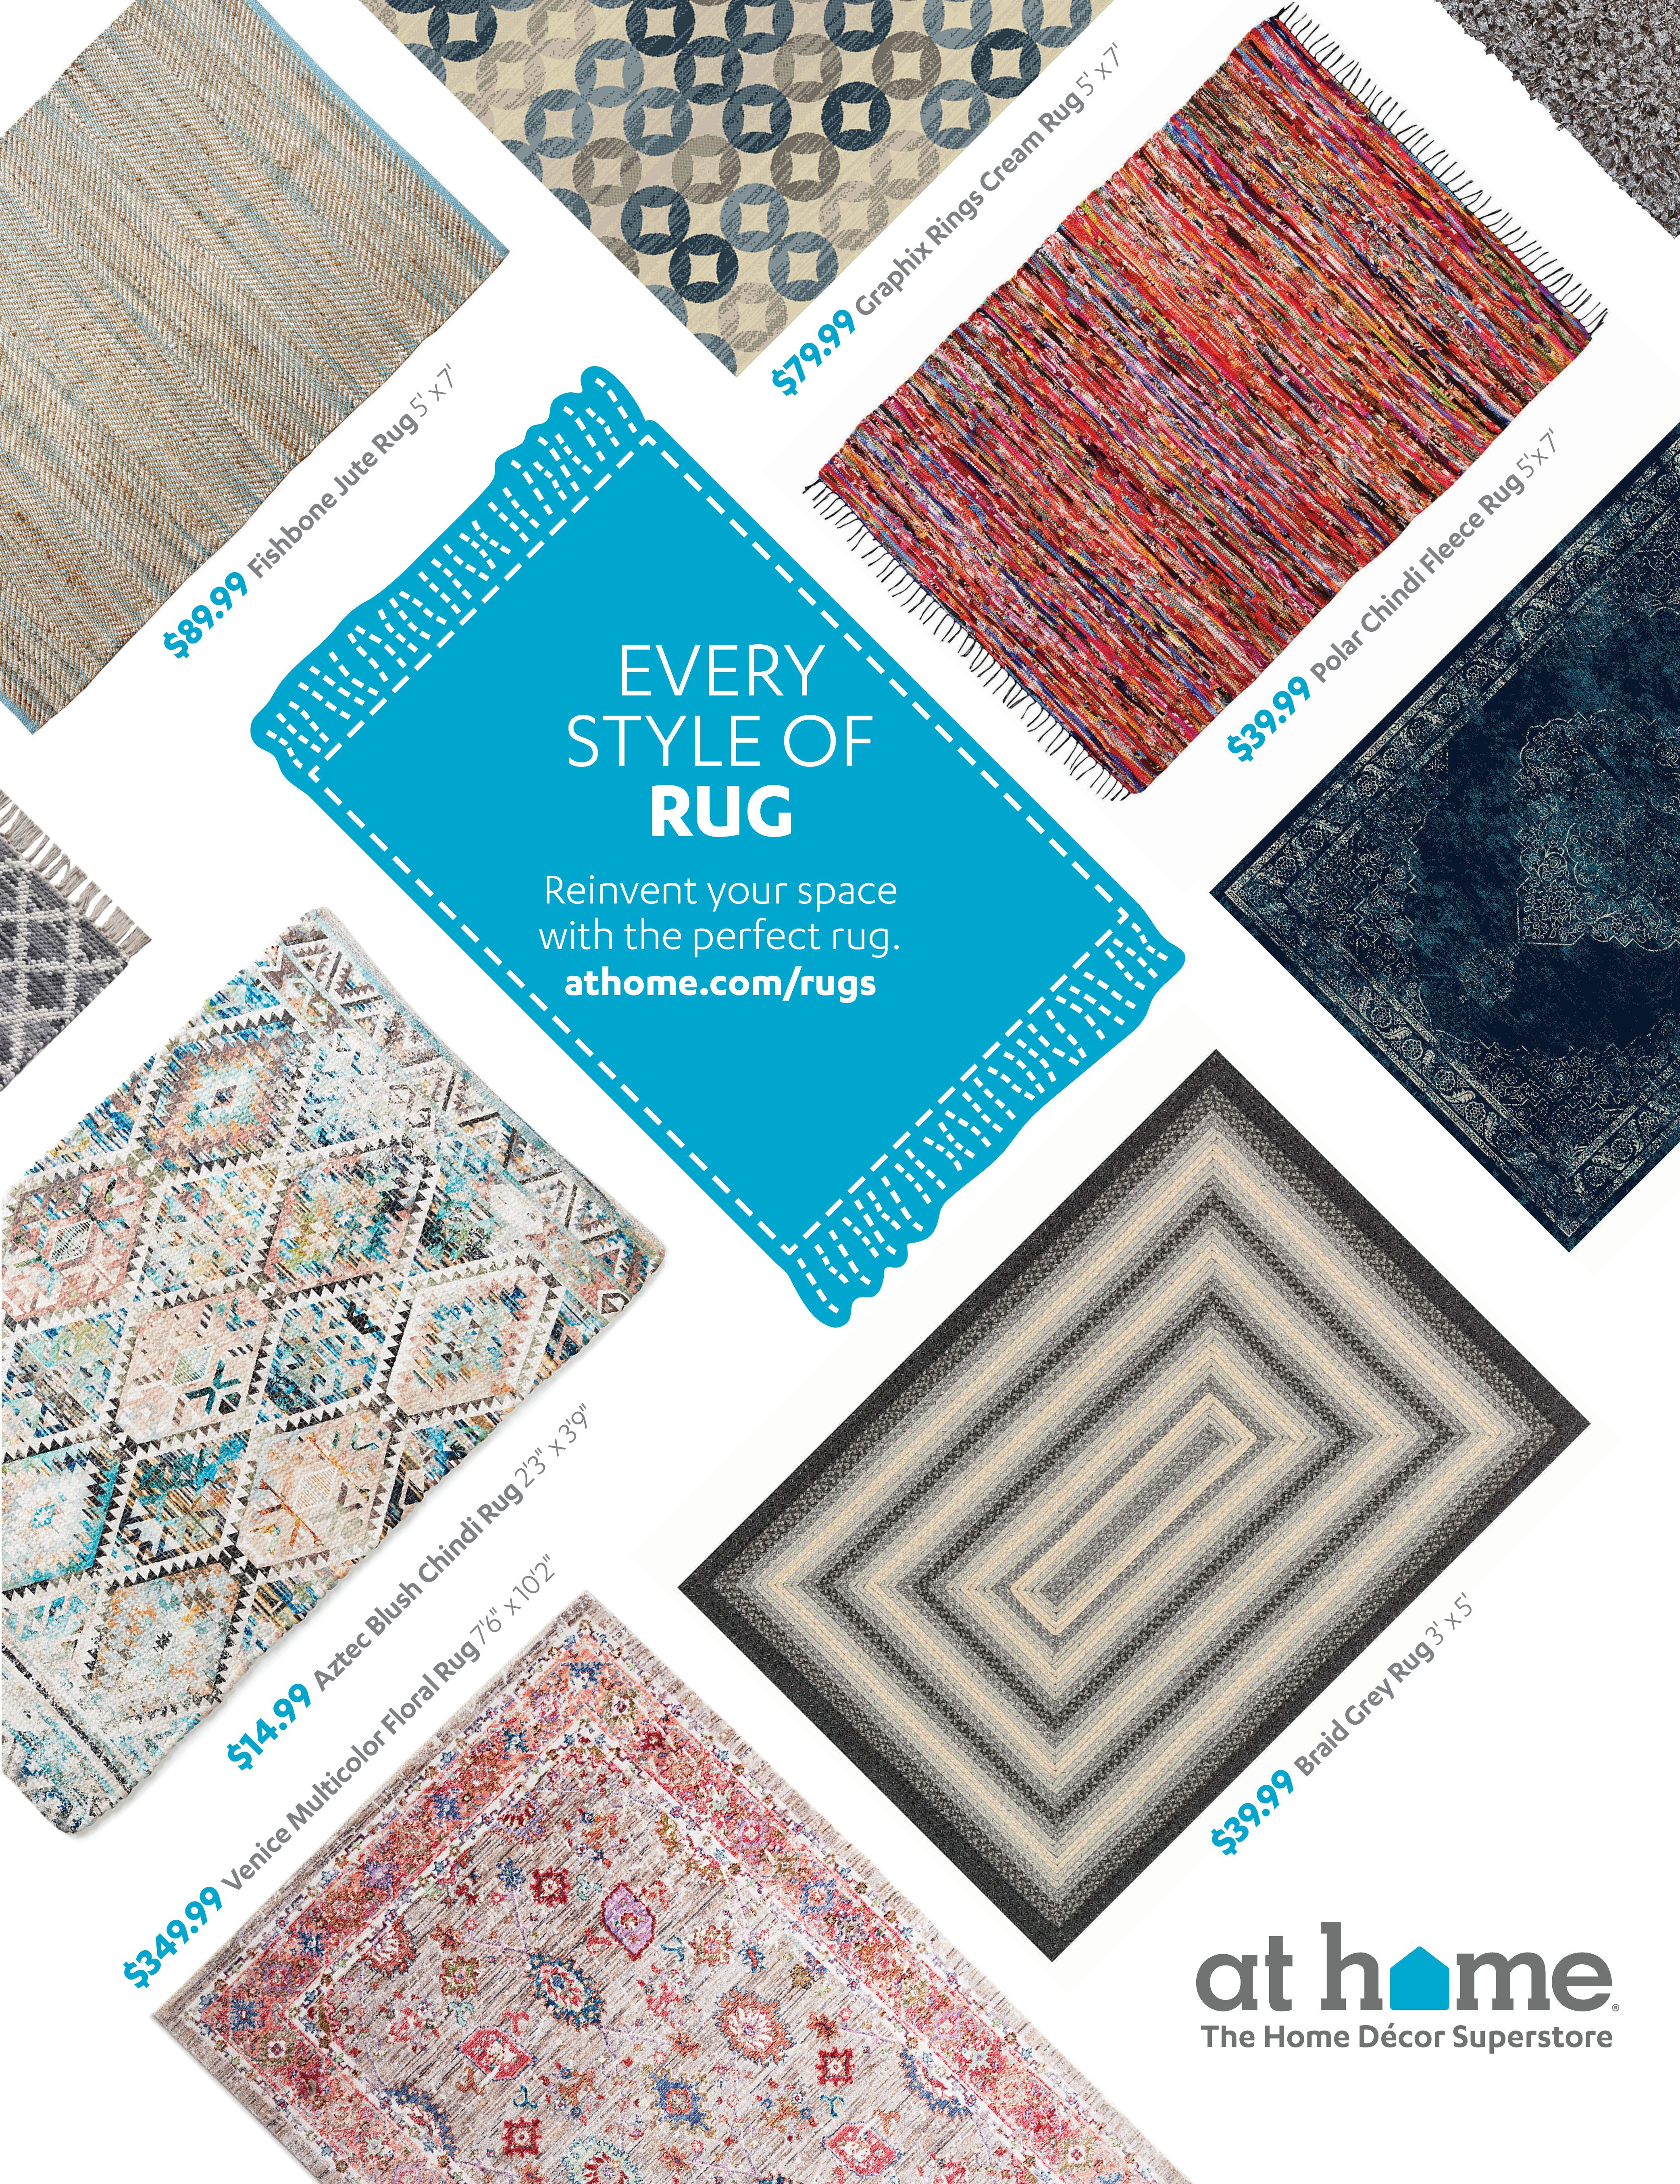 Every Style And Size Of Rug At Every Budget Find Area Rugs For